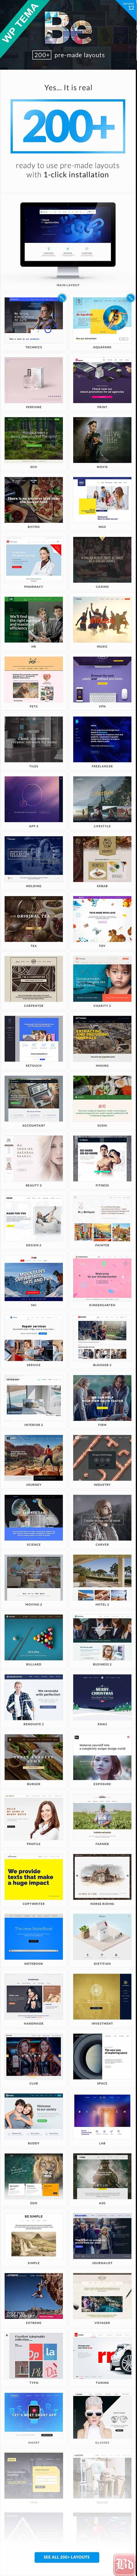 ThemeForest – BeTheme v12.8 – Responsive Multi-Purpose WordPress Theme – 7758048